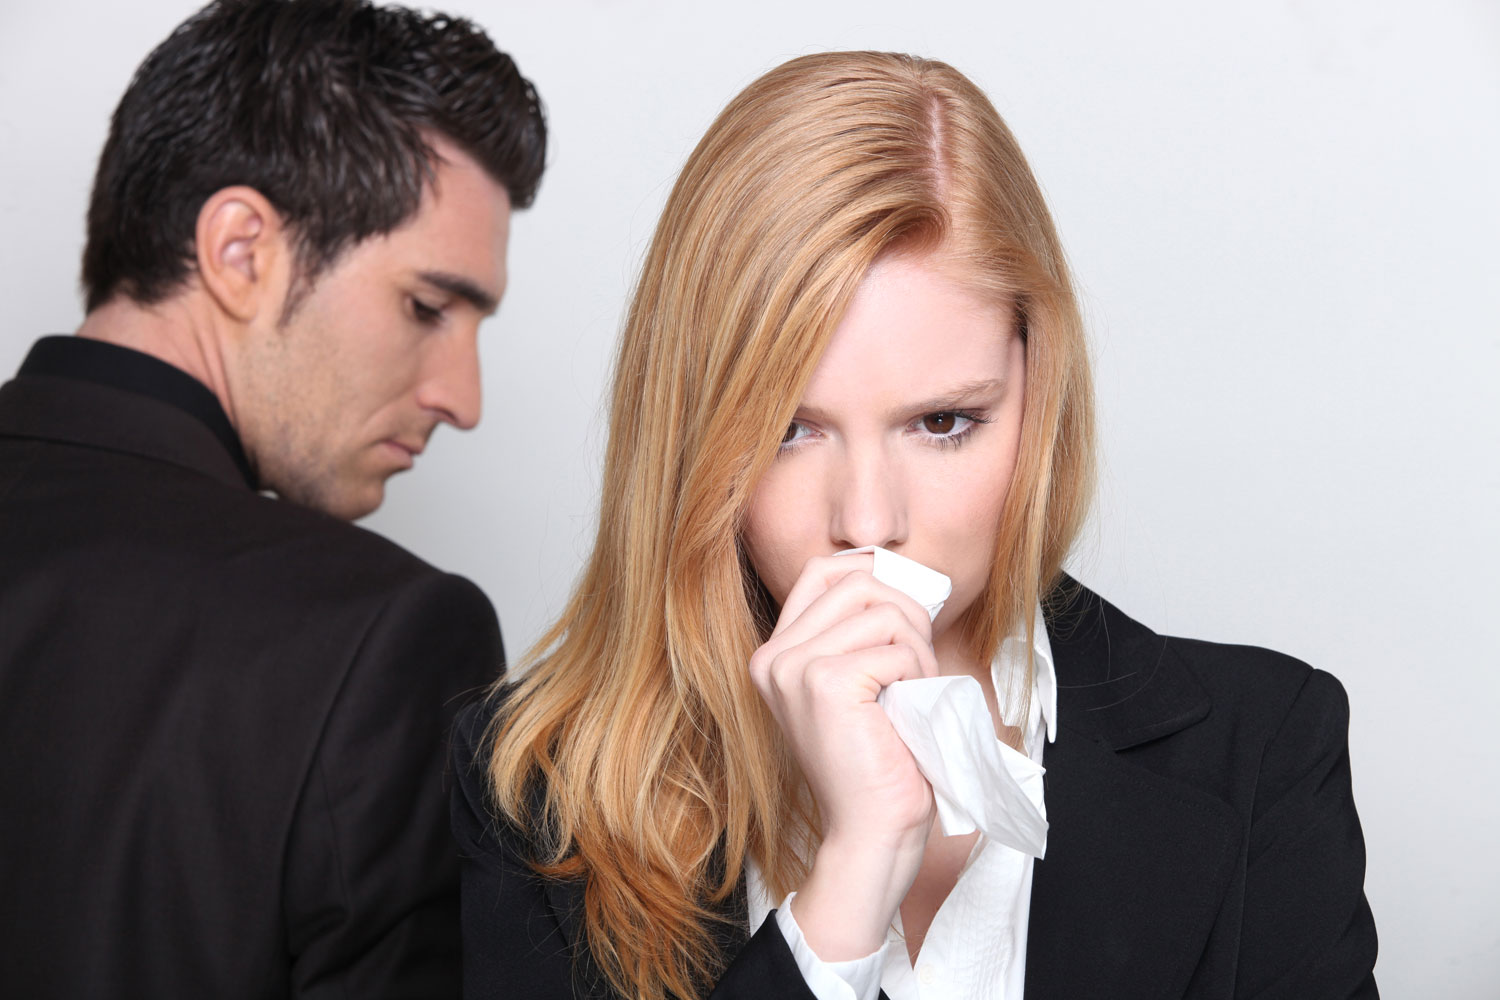 women and divorce Divorce may be cause the therapist continues to work with jill to help her manage her grief and begin moving forward as a single woman divorce after a 30.